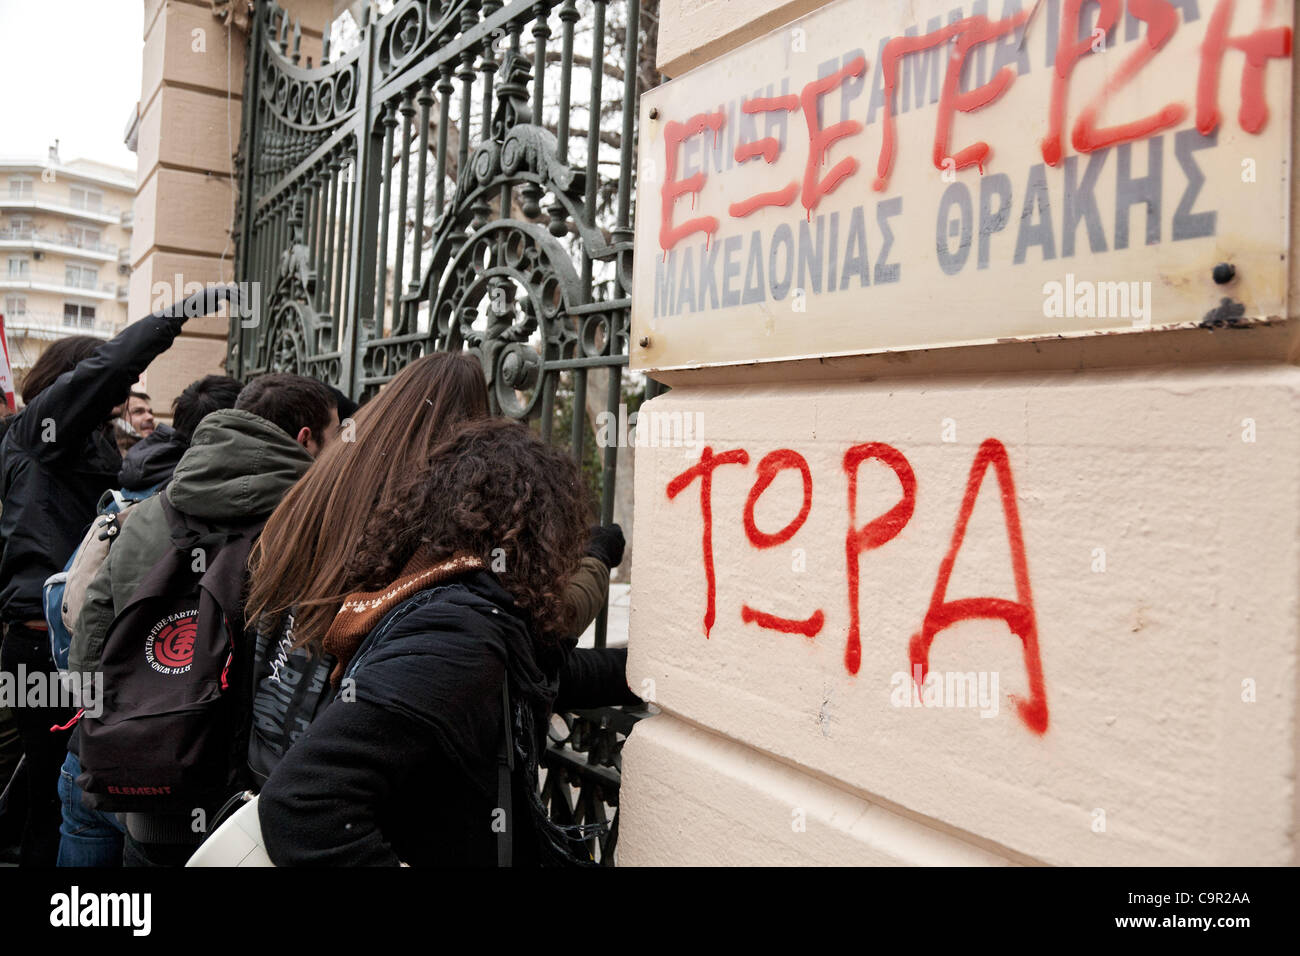 'Uprising Now' is sprayed on a wall outside the former Ministry of Macedonia and Thrace. 48-hour nationwide - Stock Image